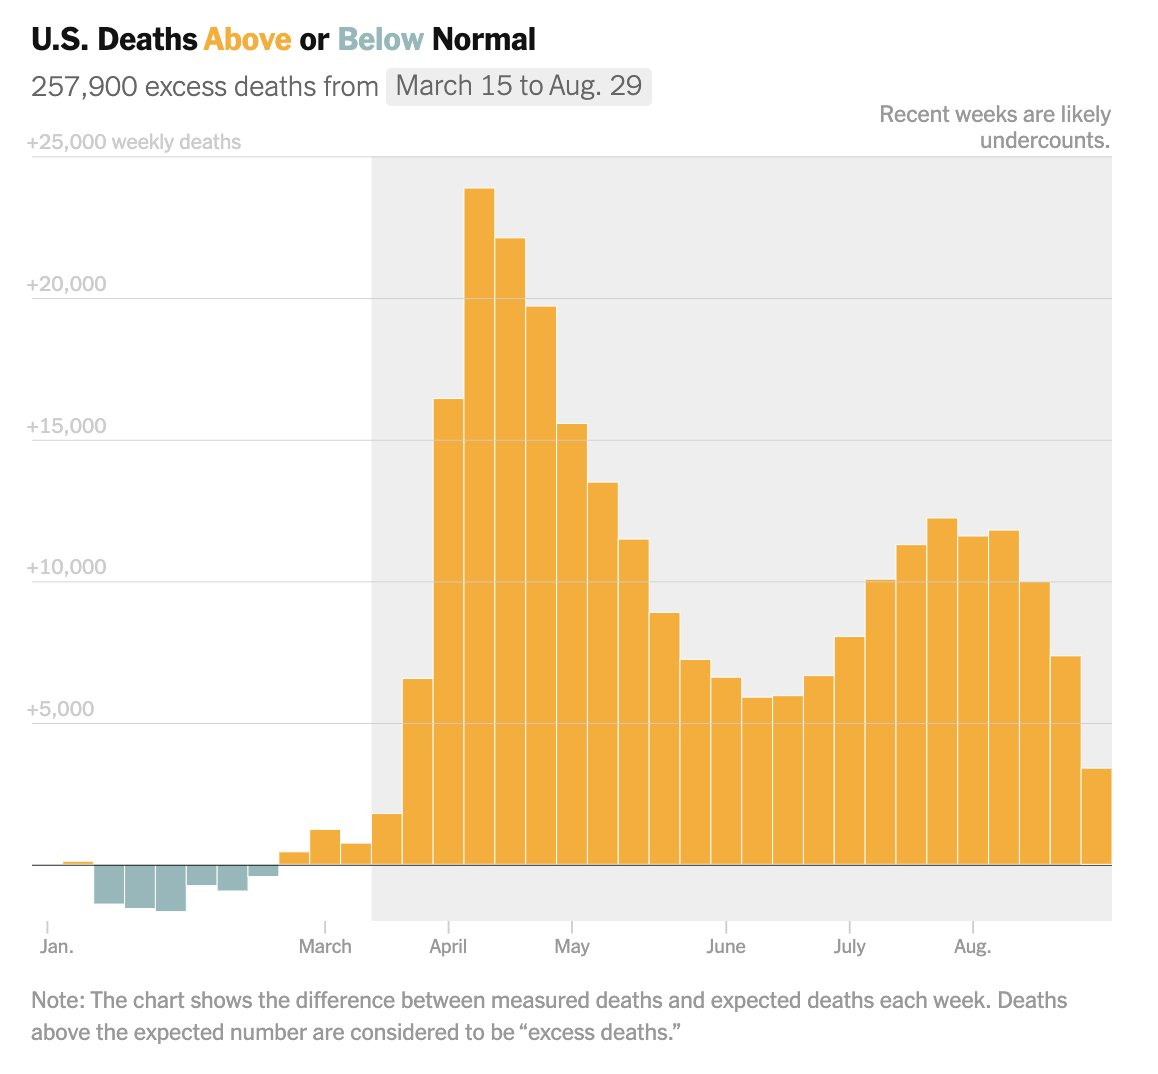 The real toll of Covid-19 is even higher than 200,000. Between mid-March and late August, 259,000 more Americans have died than would in a normal year. https://t.co/el2F4irjhD @DeniseDSLu @jshkatz https://t.co/63CA1cd7bt